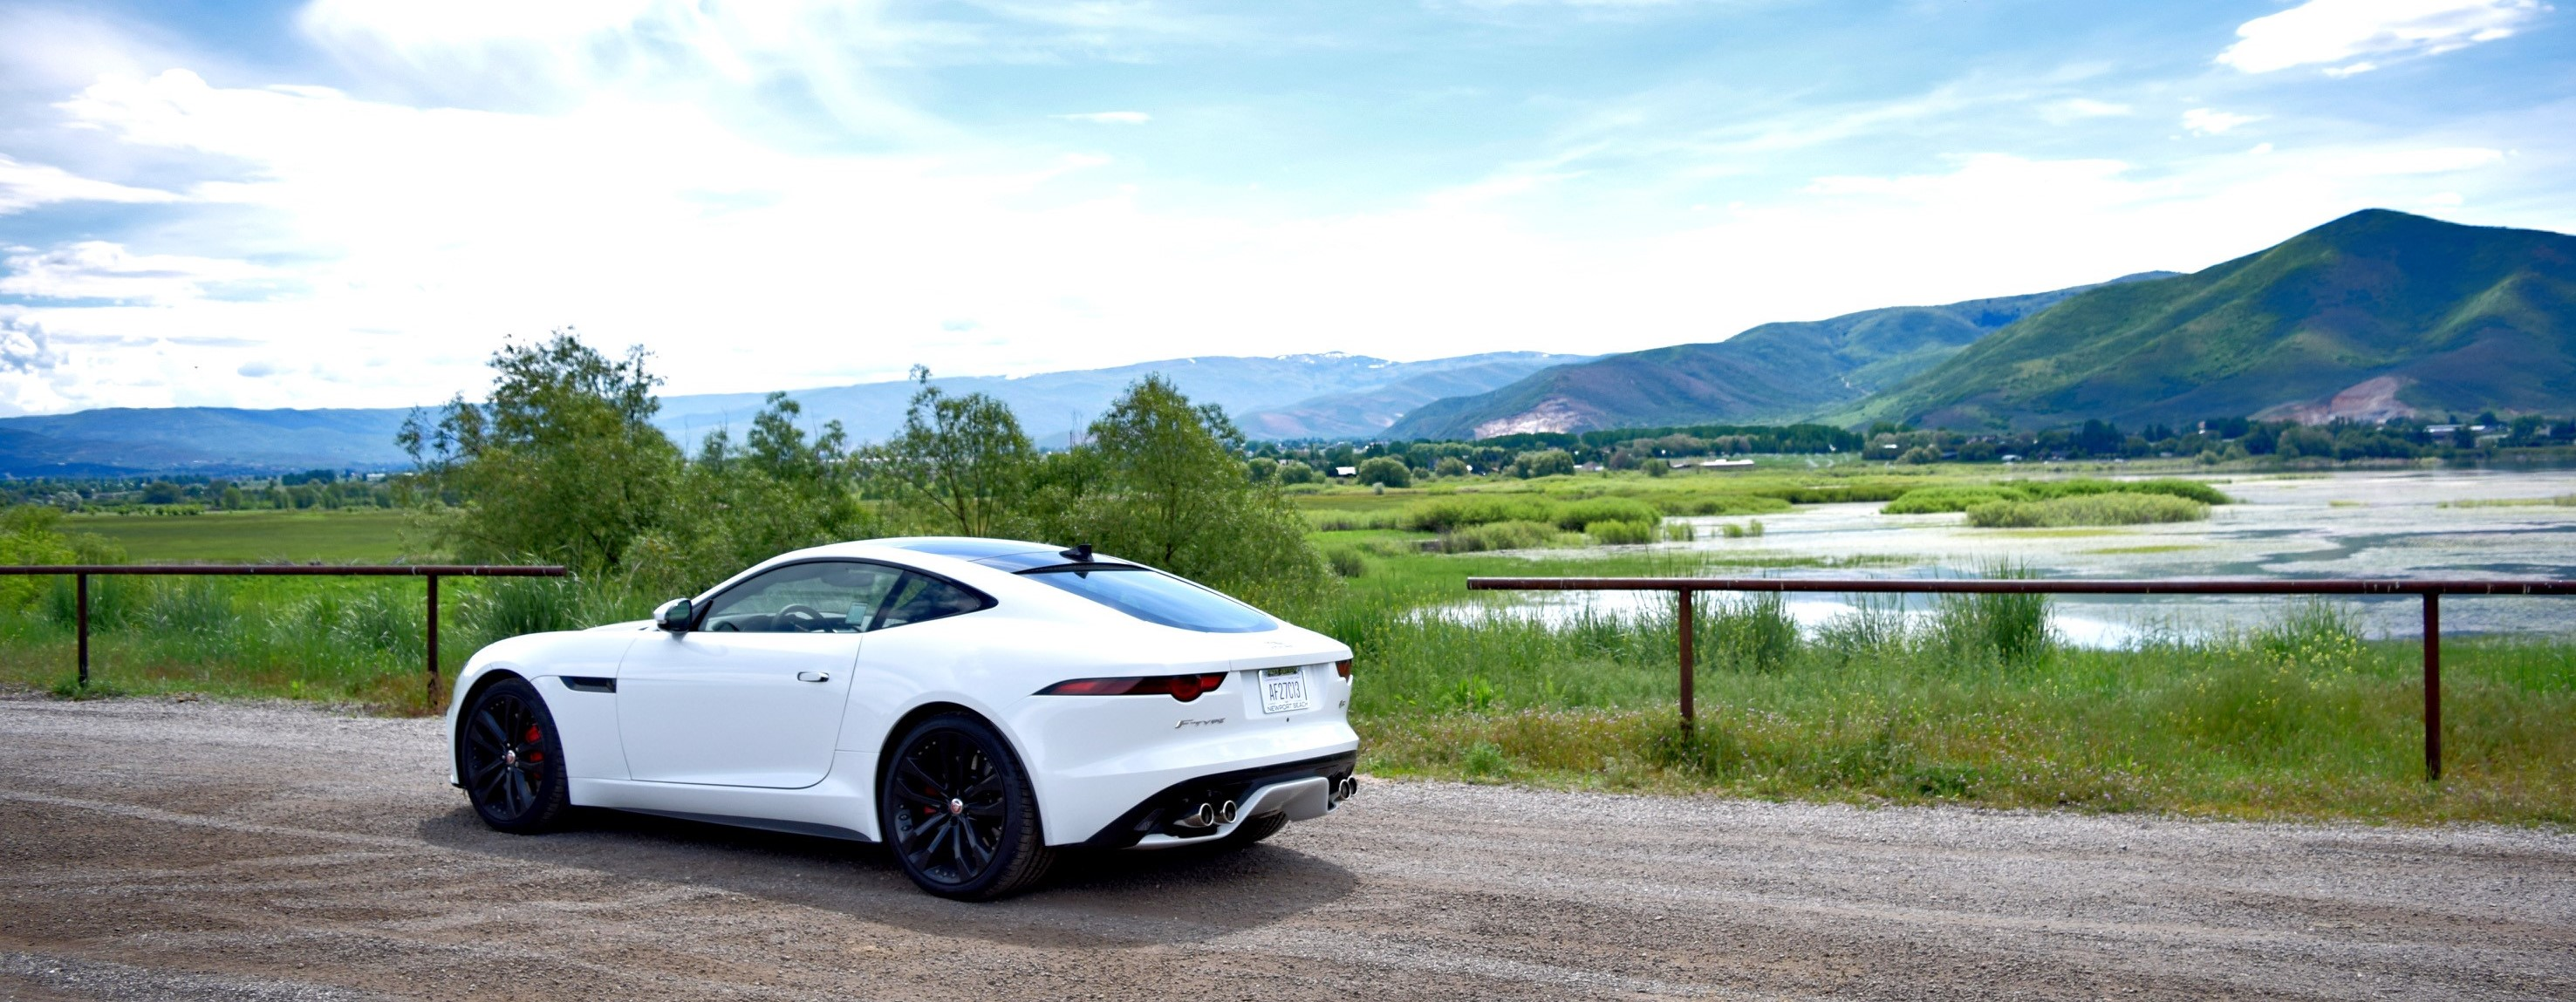 On the Road with Our Jaguar F-TYPE